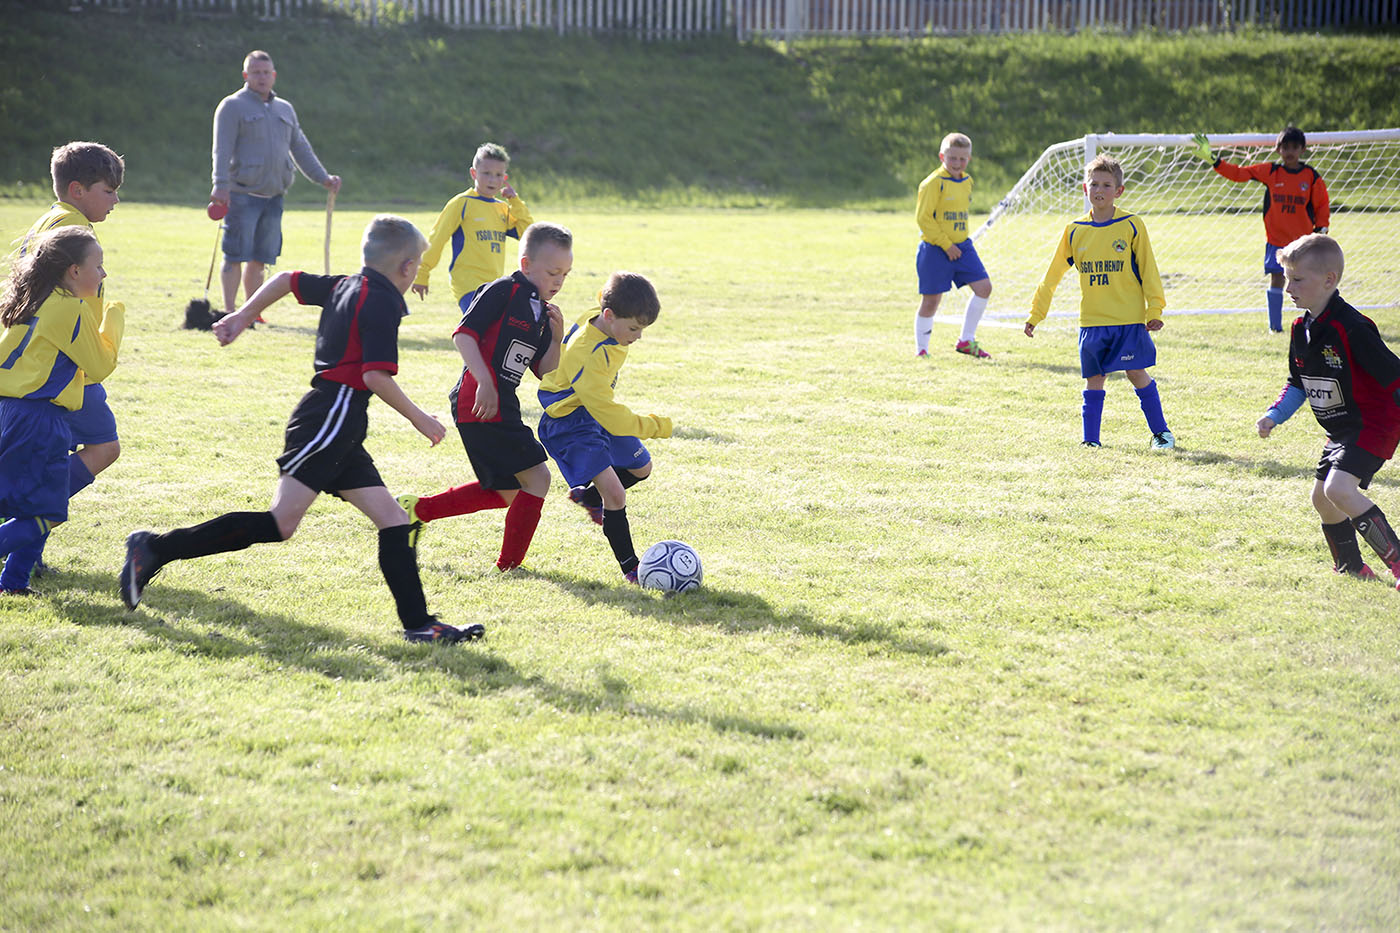 Small club 'overwhelmed' by the interest shown in football festival